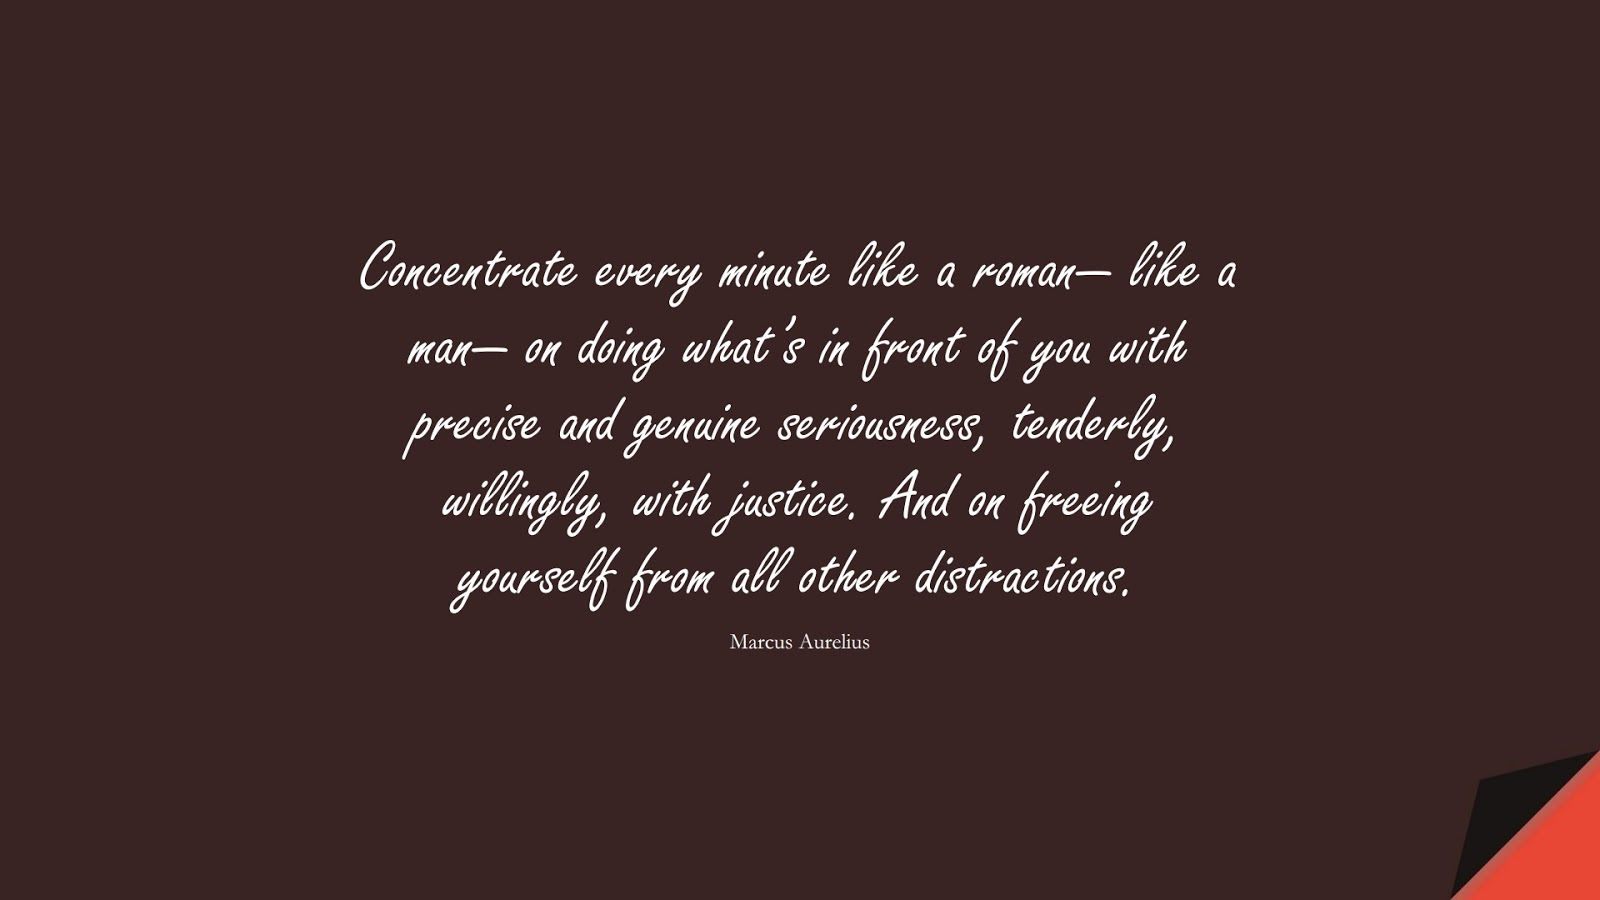 Concentrate every minute like a roman— like a man— on doing what's in front of you with precise and genuine seriousness, tenderly, willingly, with justice. And on freeing yourself from all other distractions. (Marcus Aurelius);  #StoicQuotes